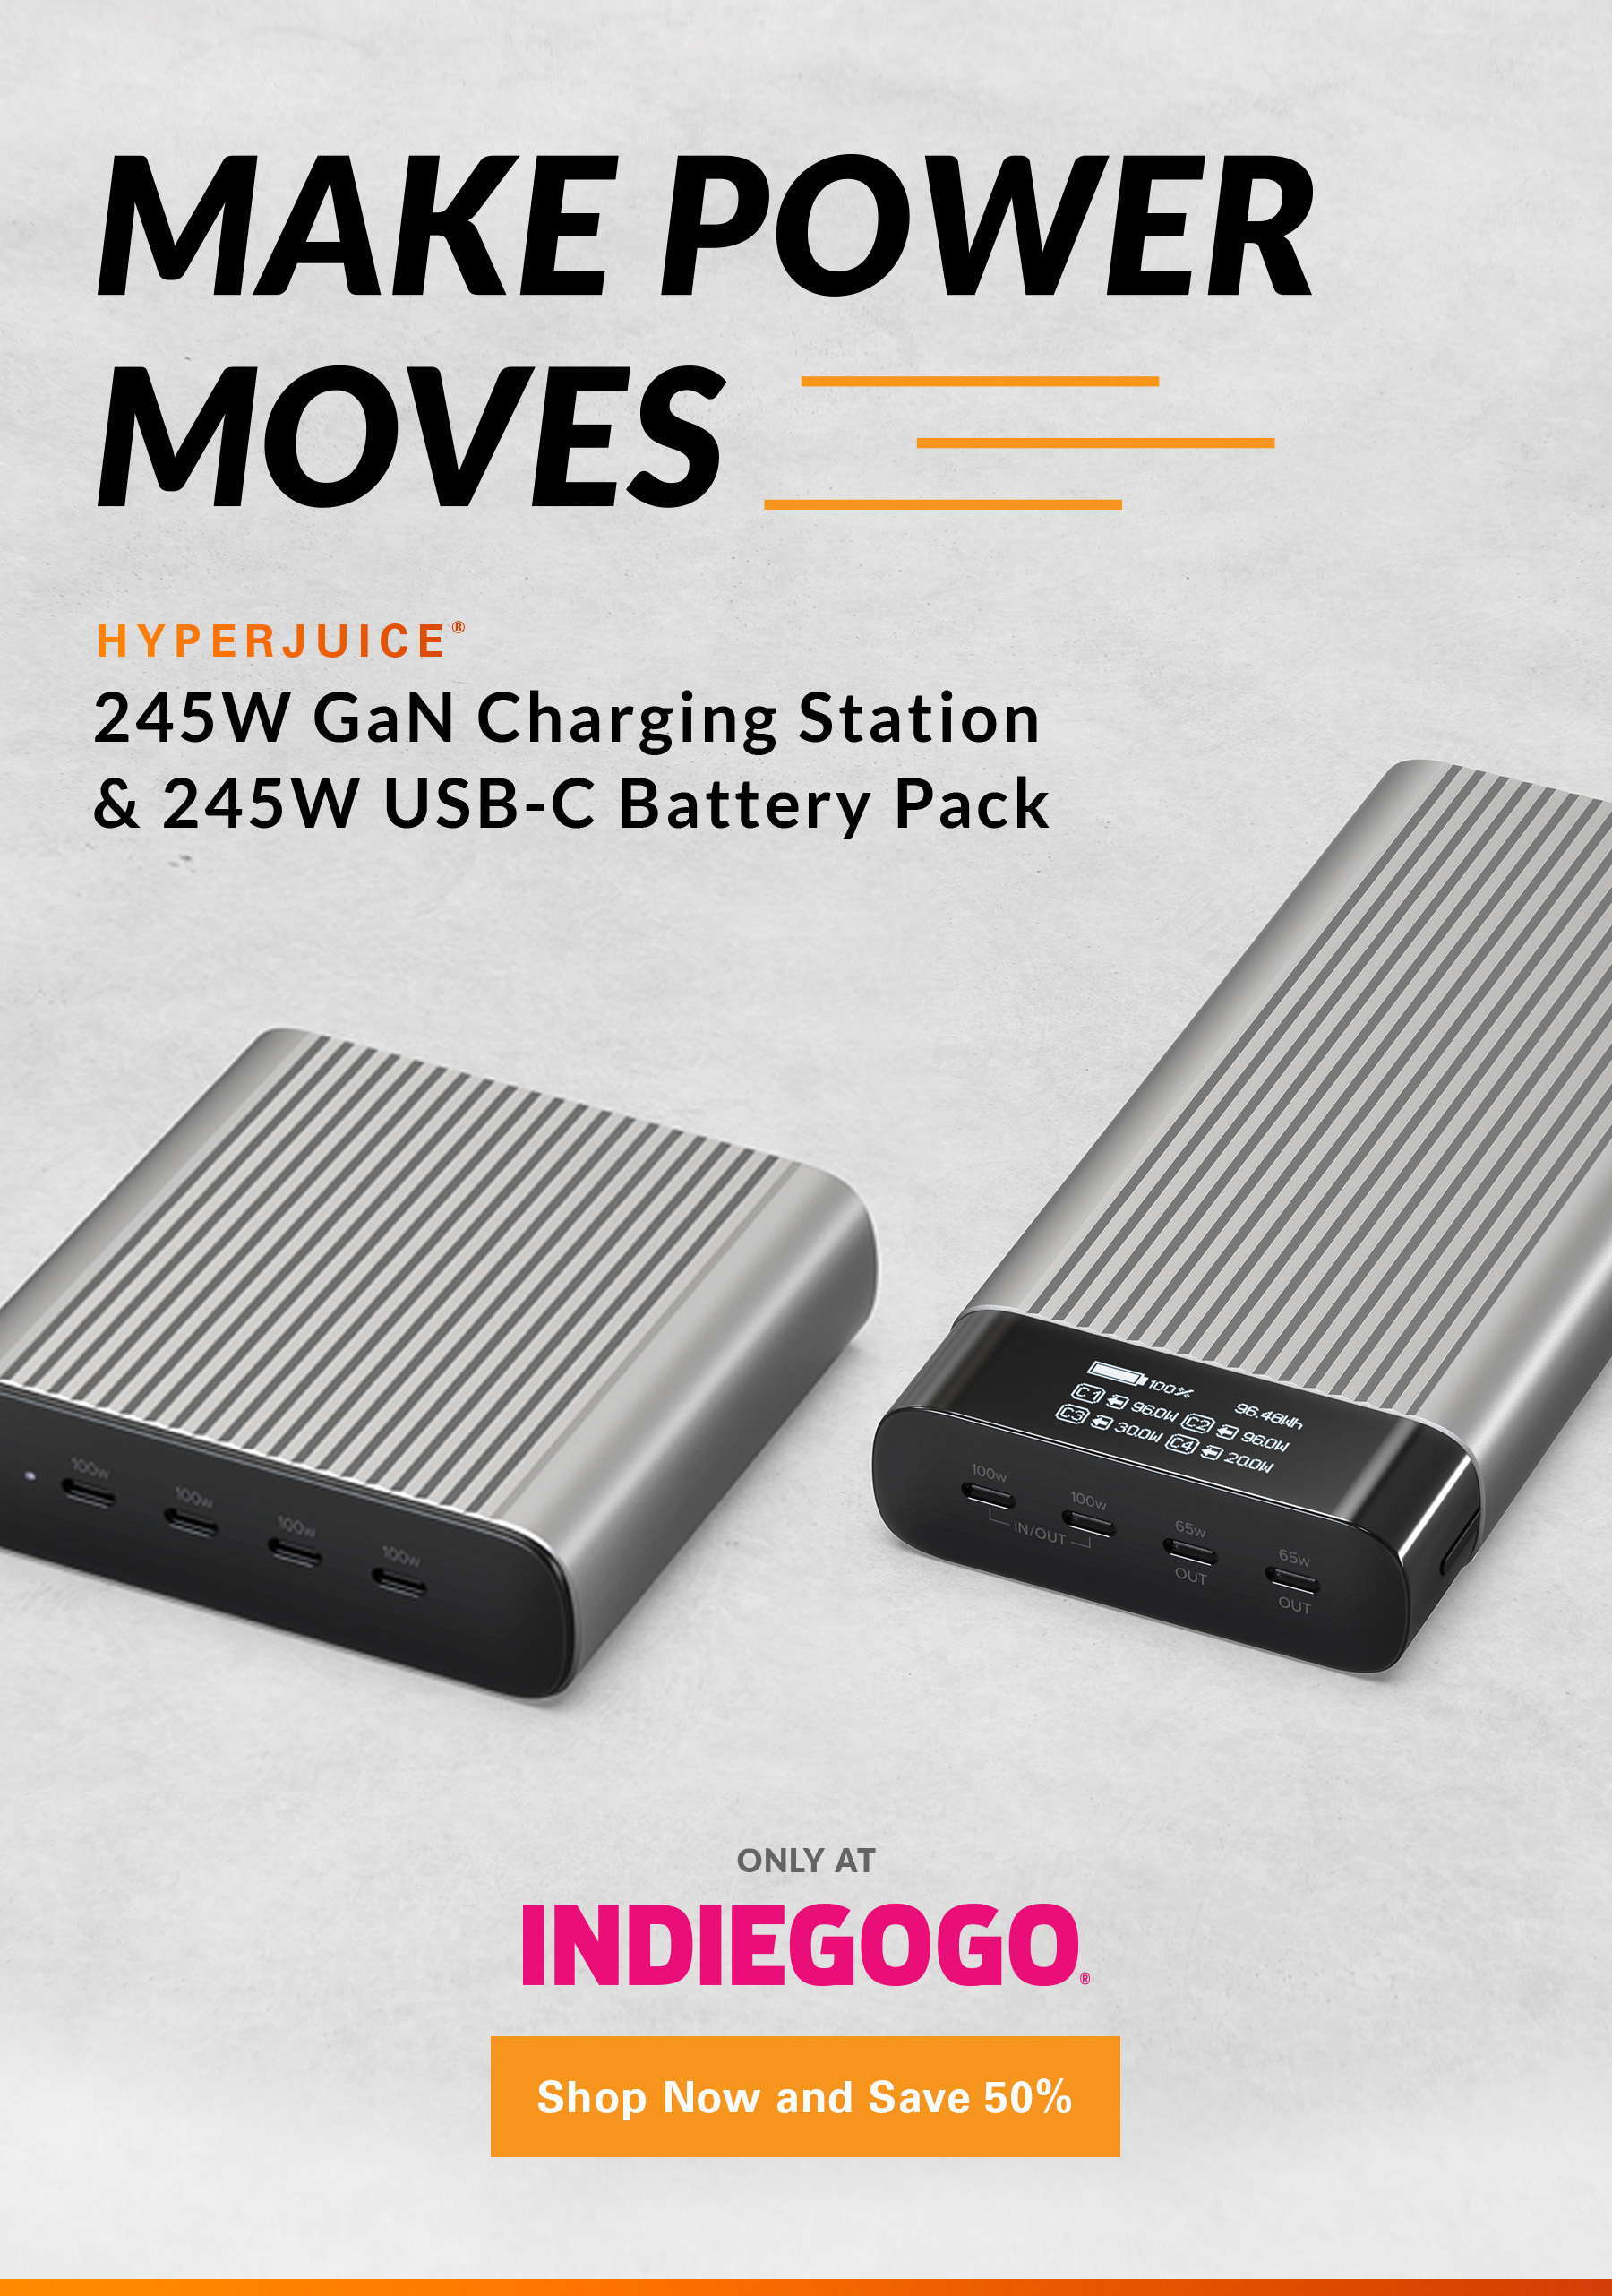 HyperJuice 245W USB-C Battery Pack & GaN Charger - Only on Indiegogo